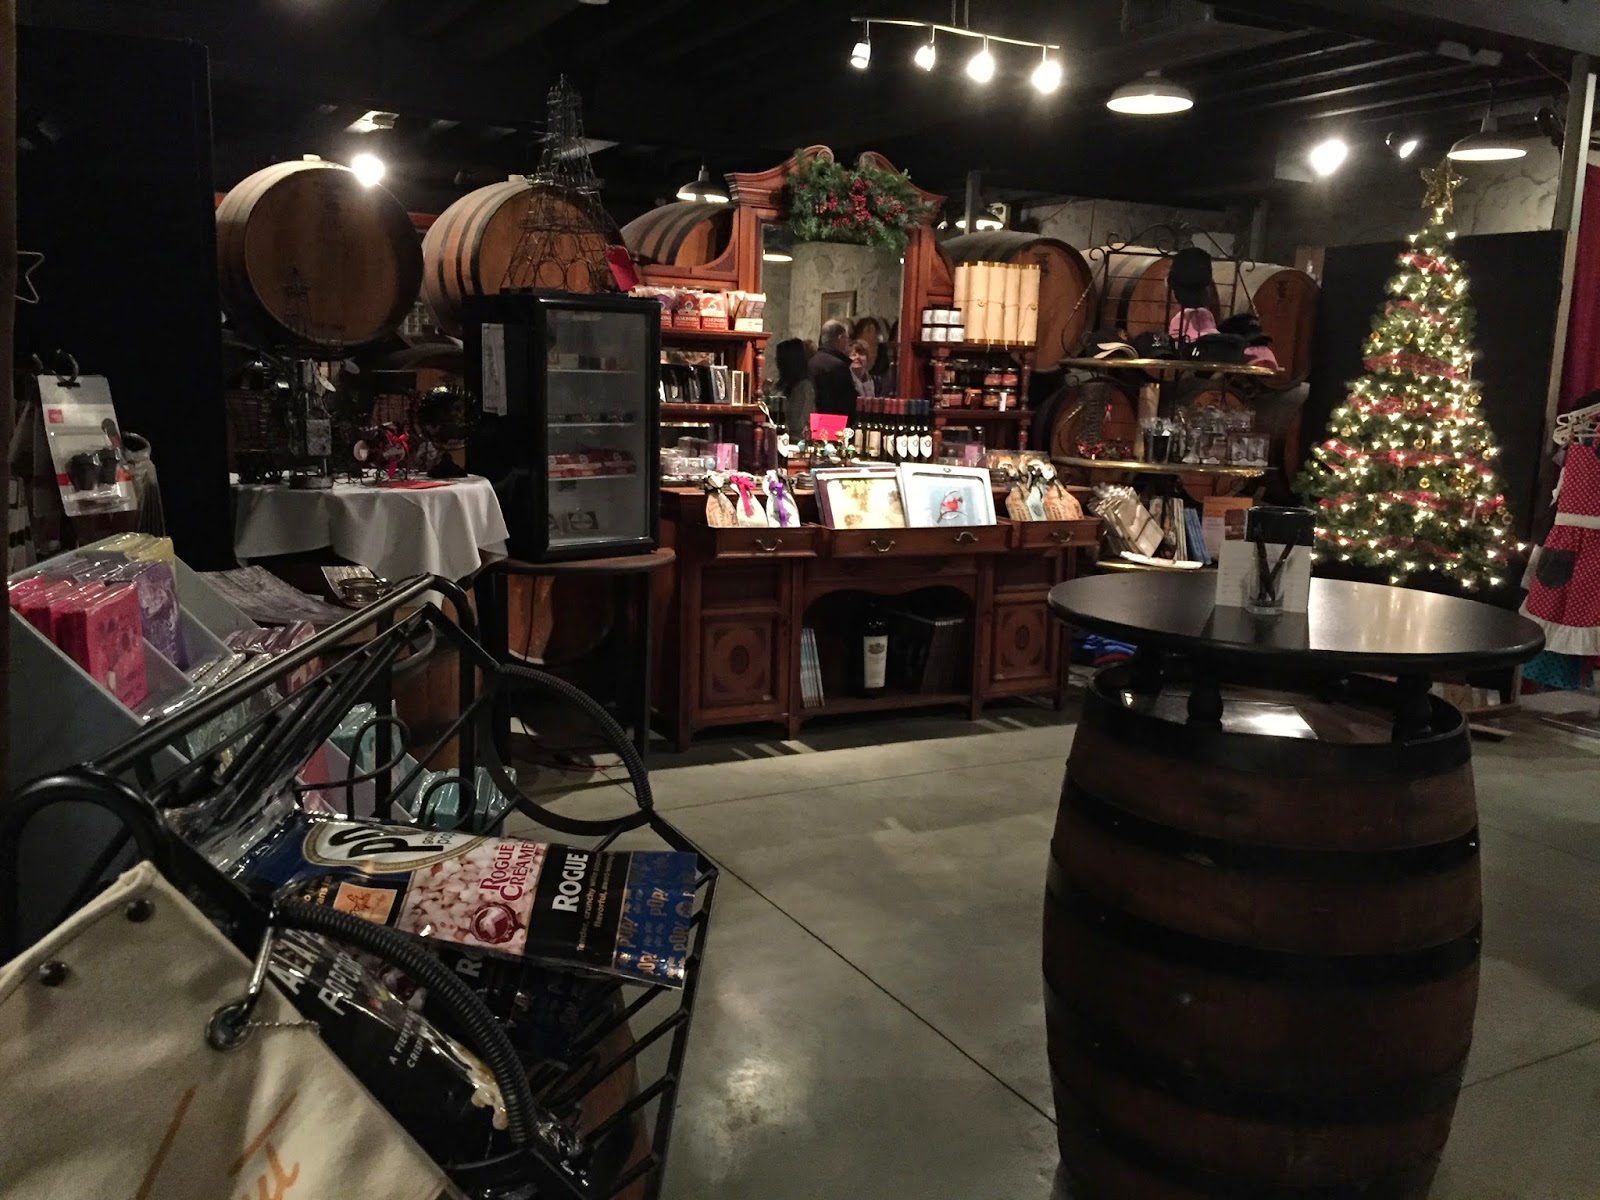 The Steven Kent Winery